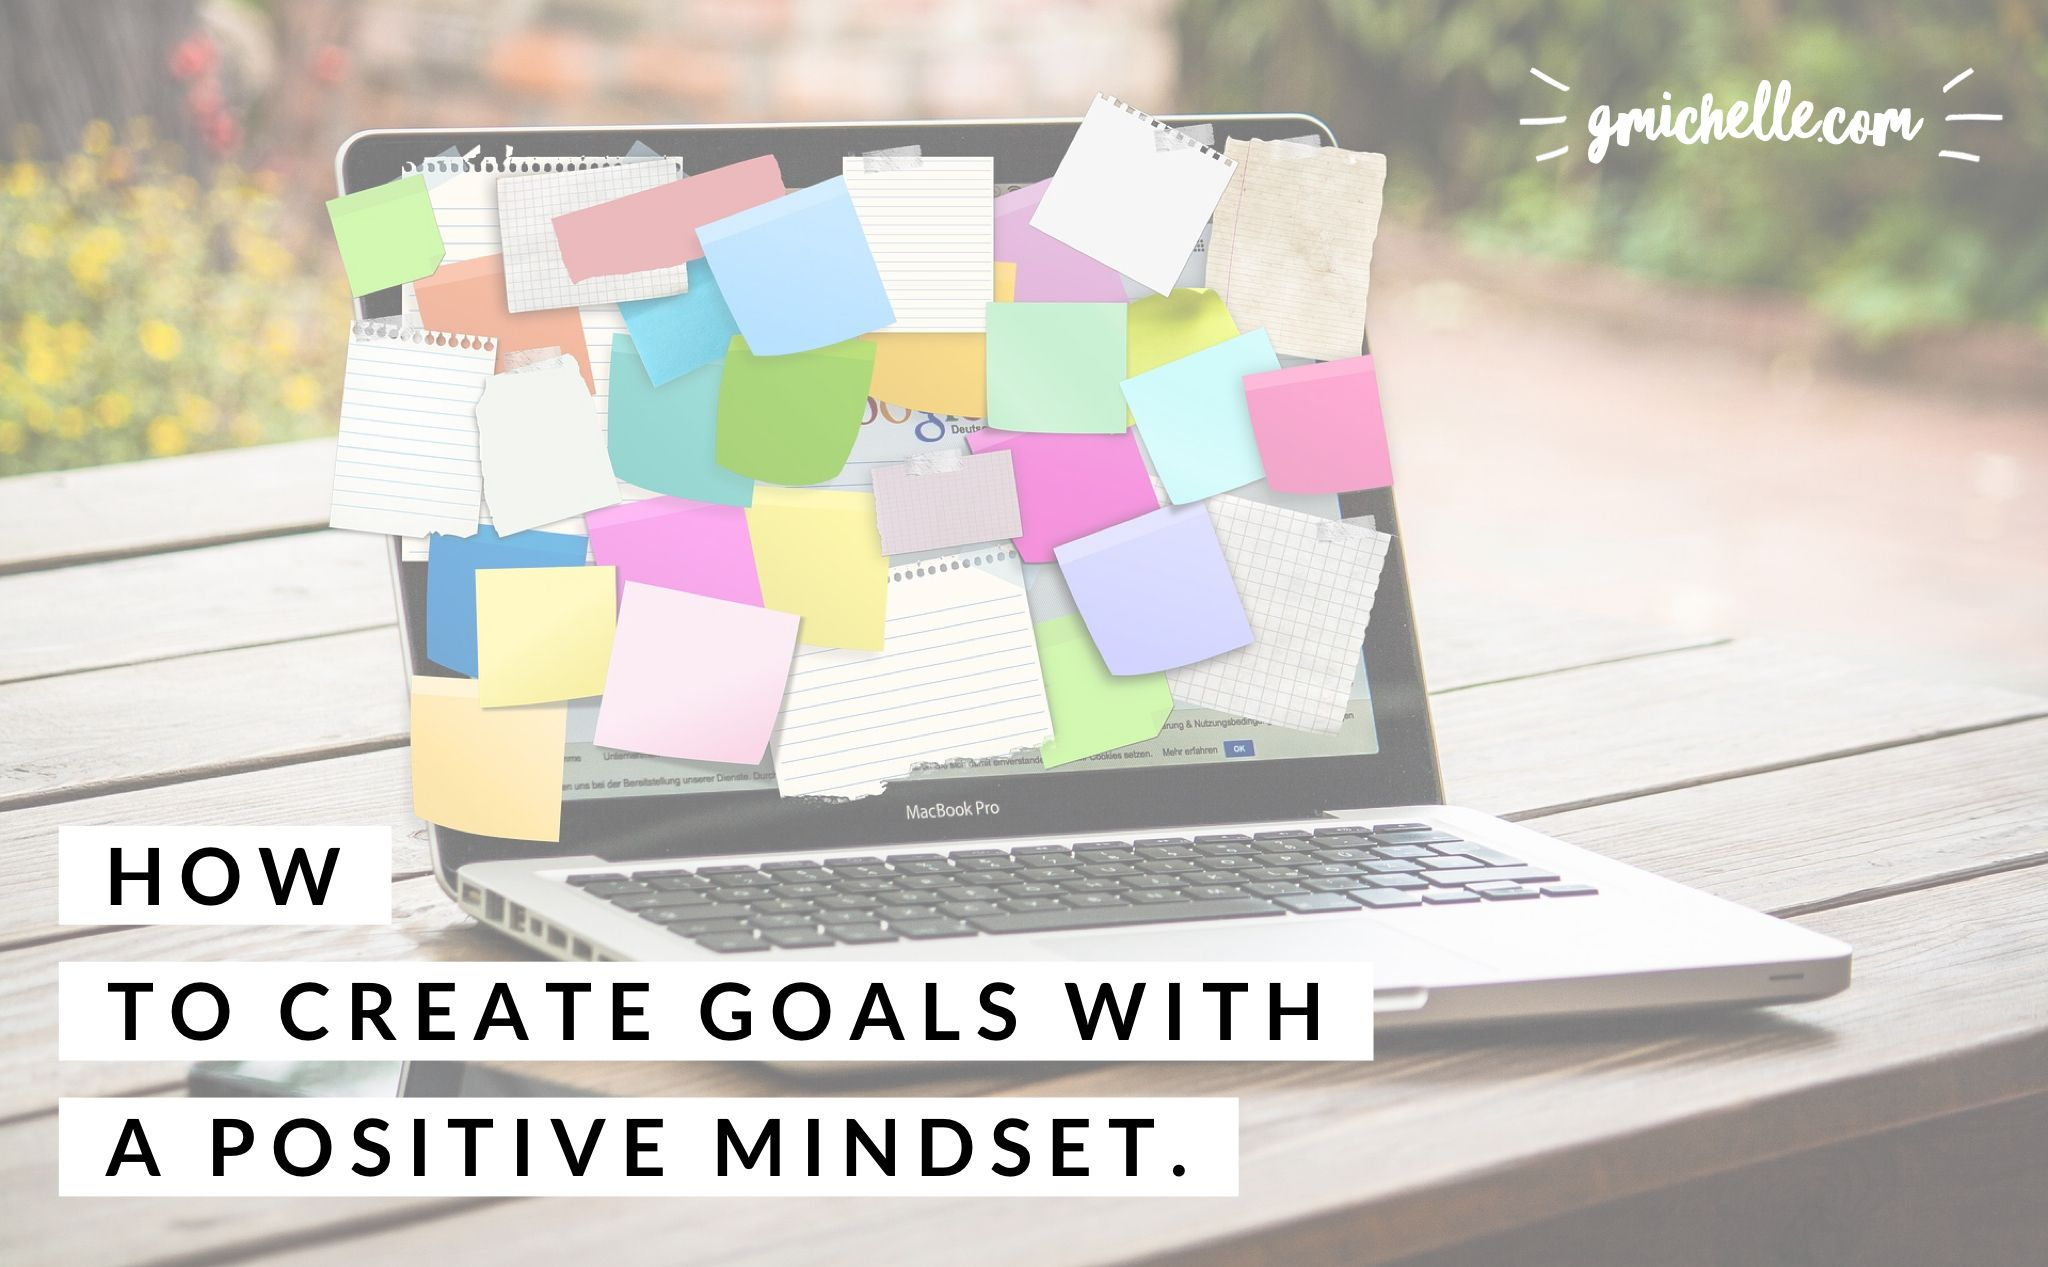 How to Create Goals with a Positive Mindset gmichelle